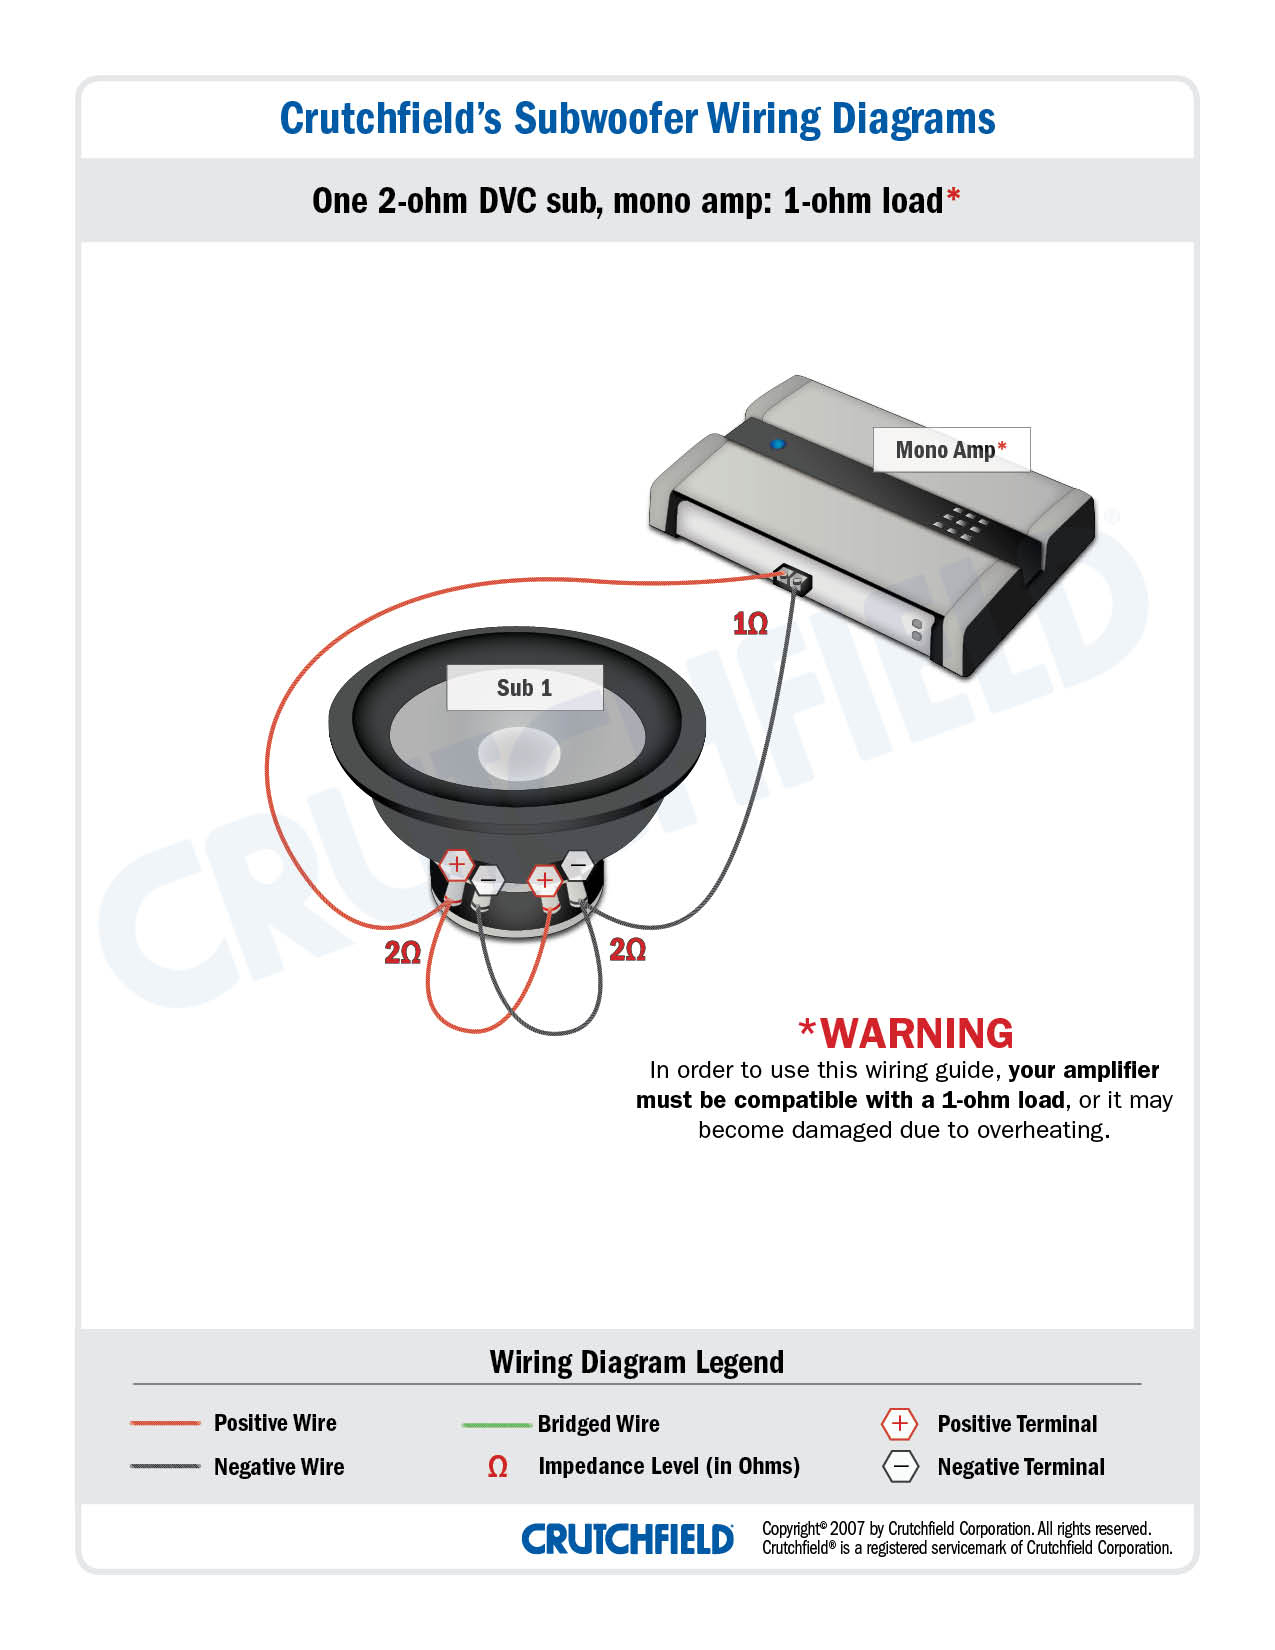 Subwoofer Wiring Diagrams — How To Wire Your Subs - Sub Wiring Diagram